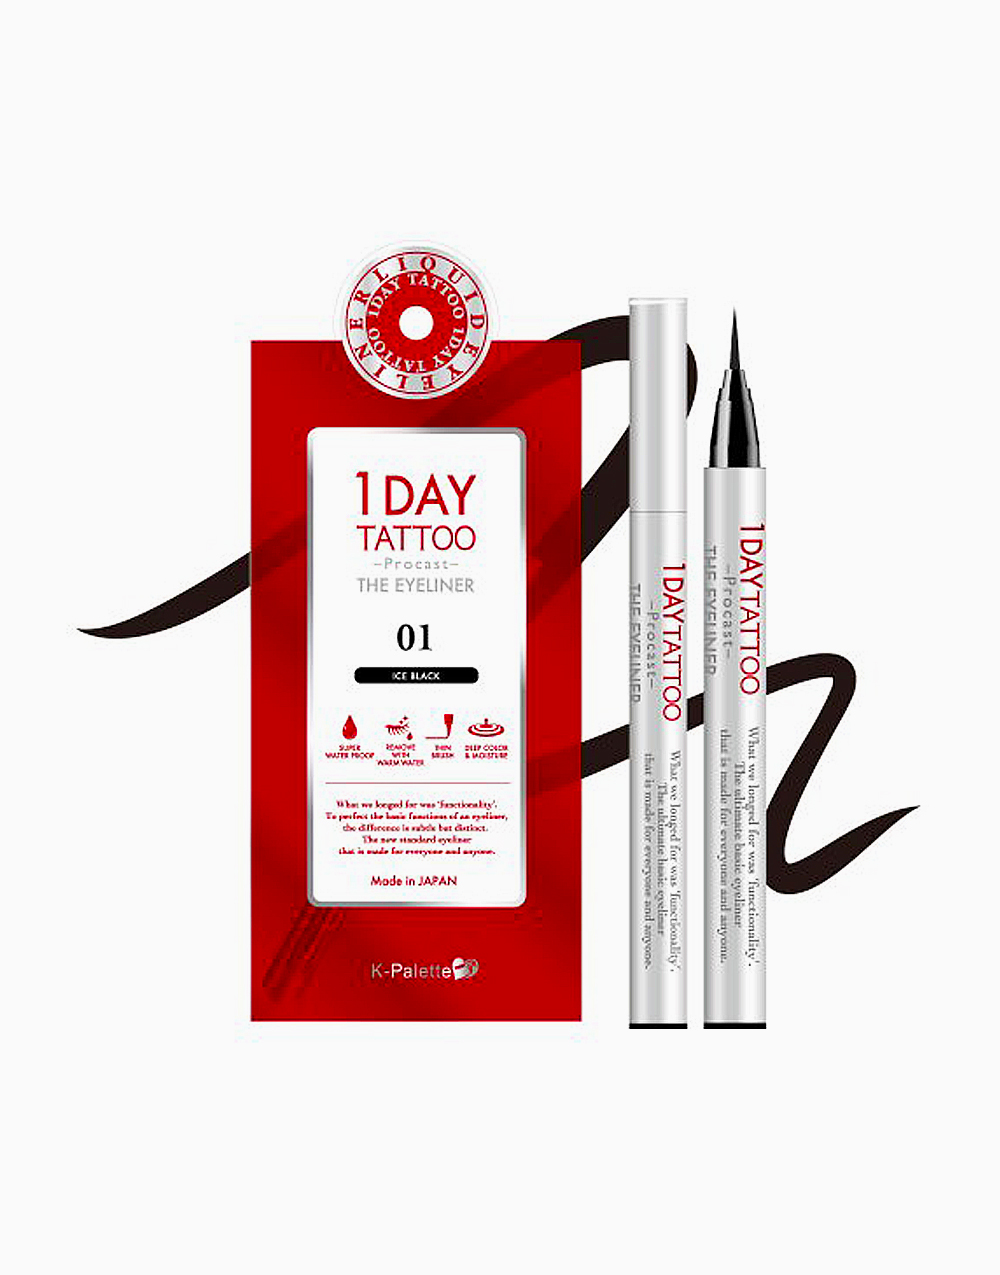 1Day Tattoo Procast the Eyeliner by K-Palette | Ice Black 01